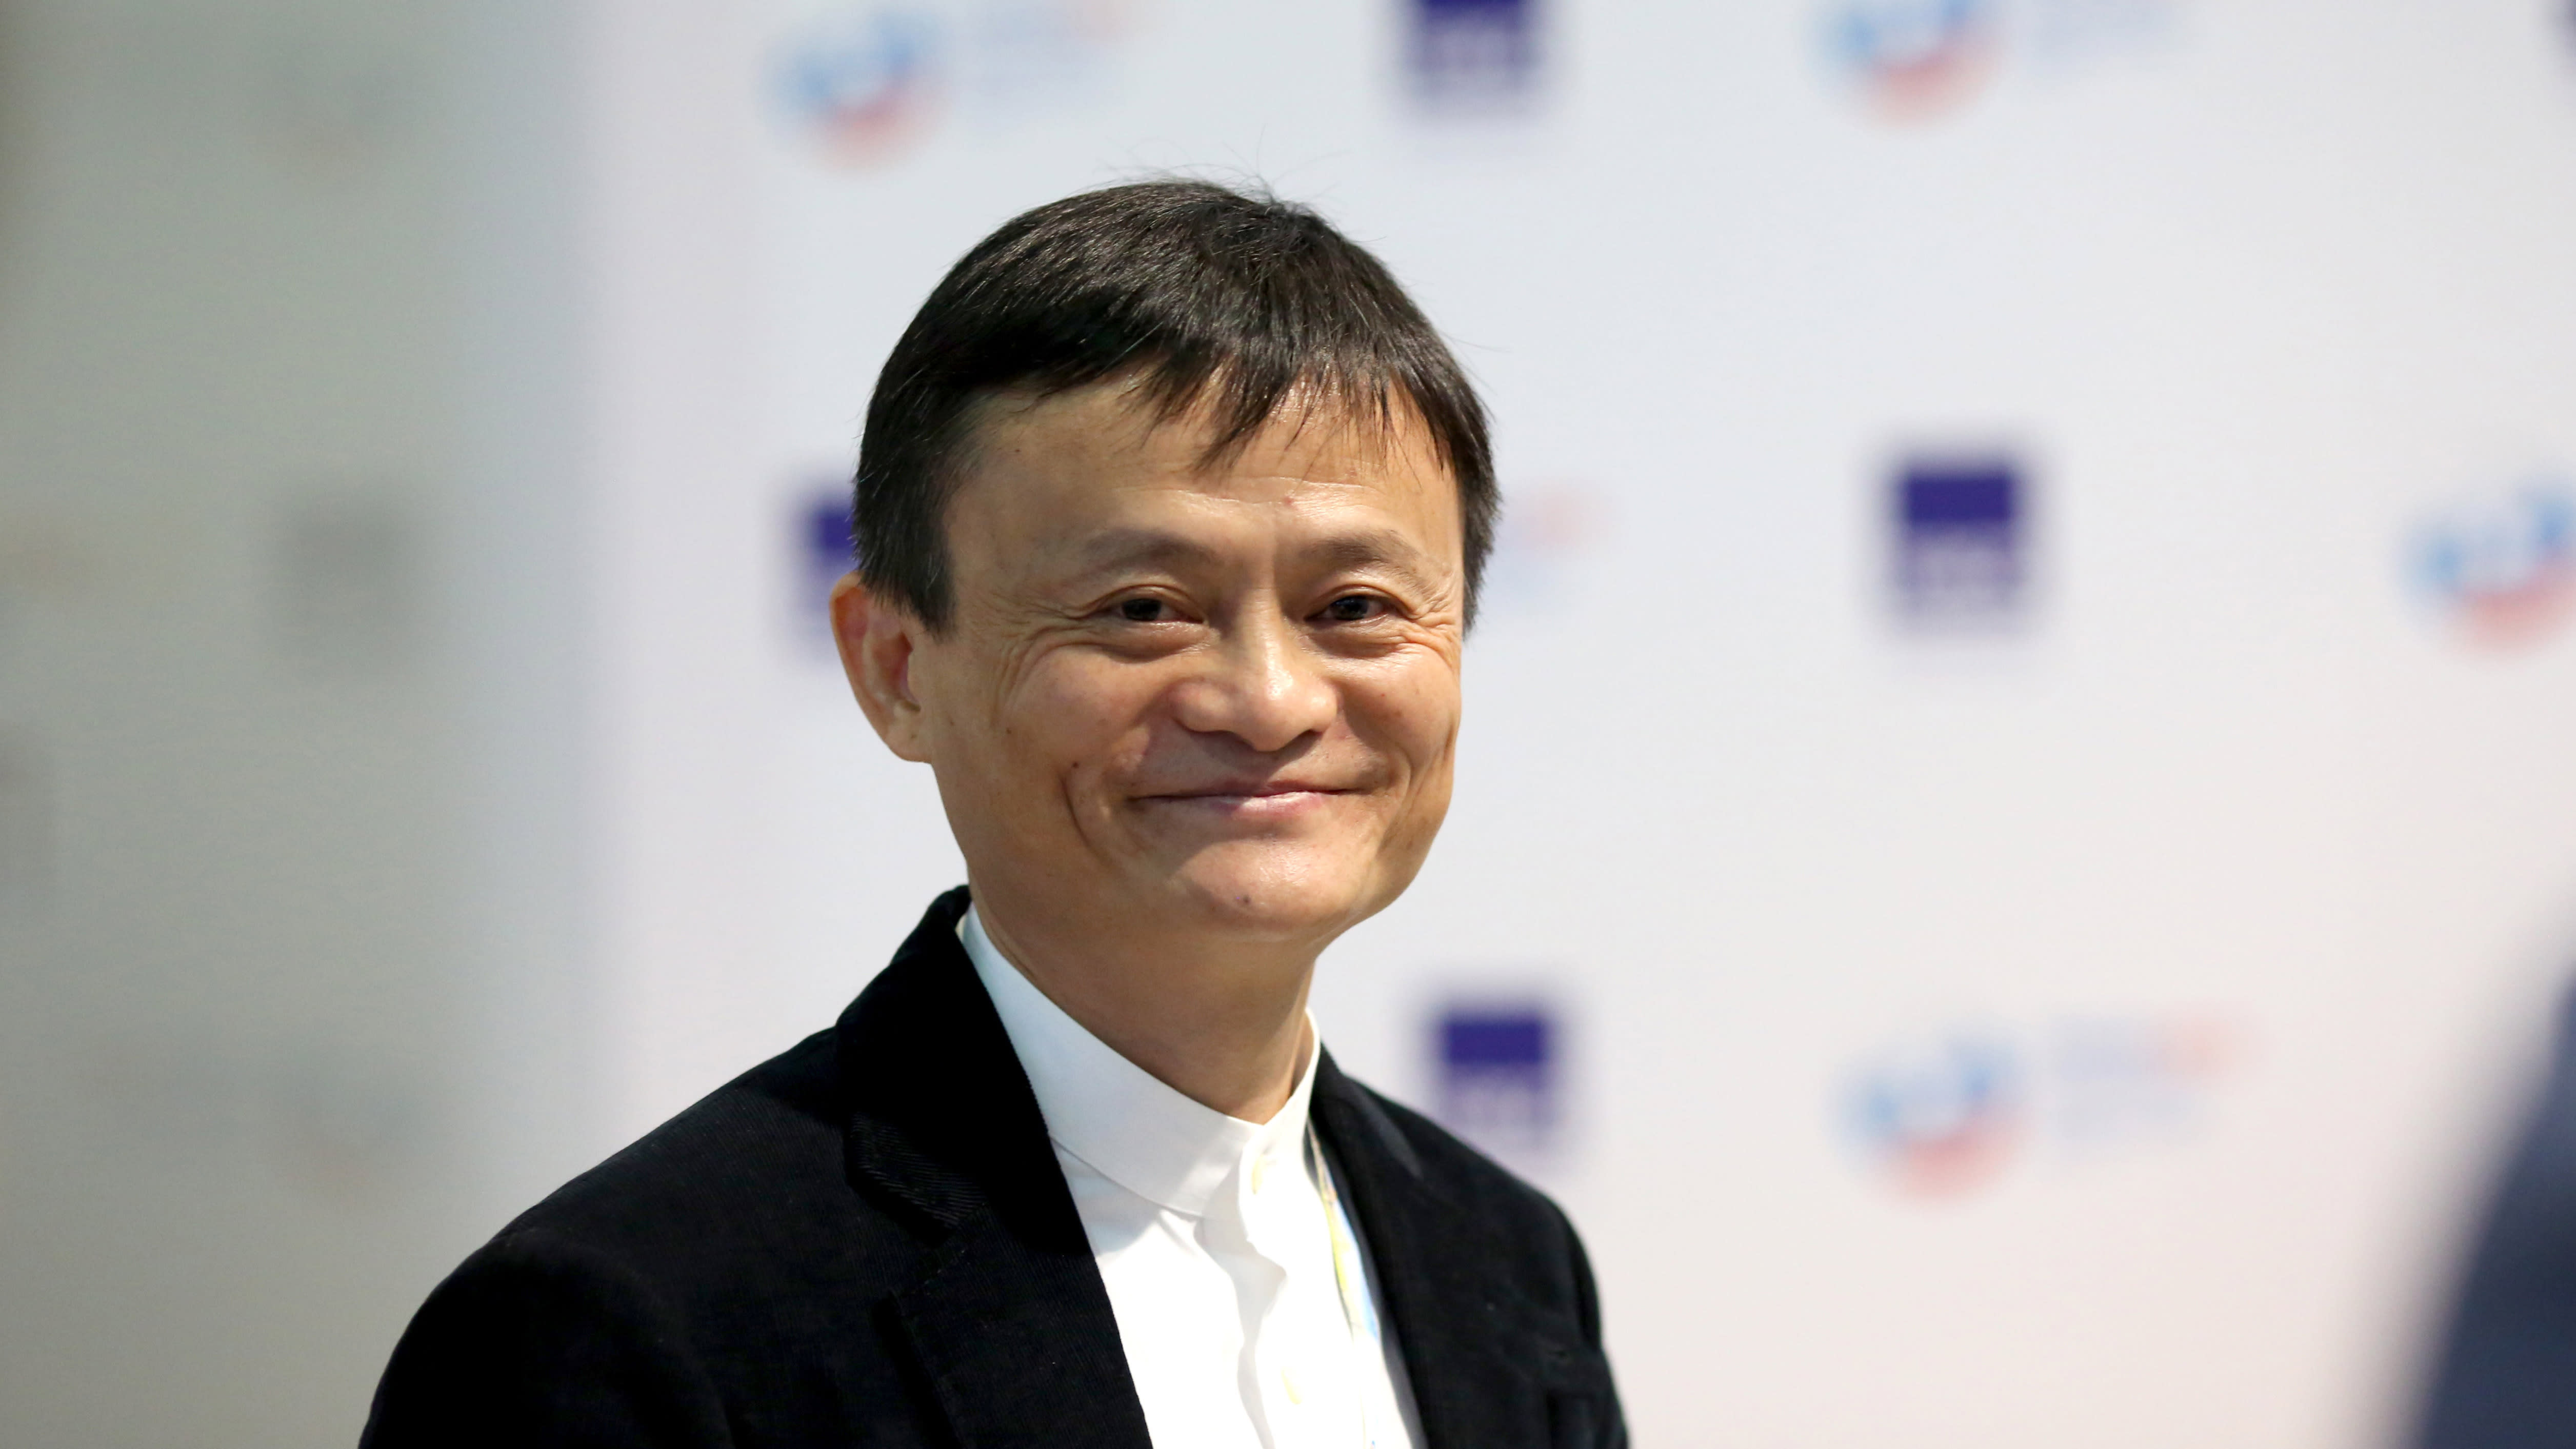 Jack Ma explains how entrepreneurs should deal with rejection